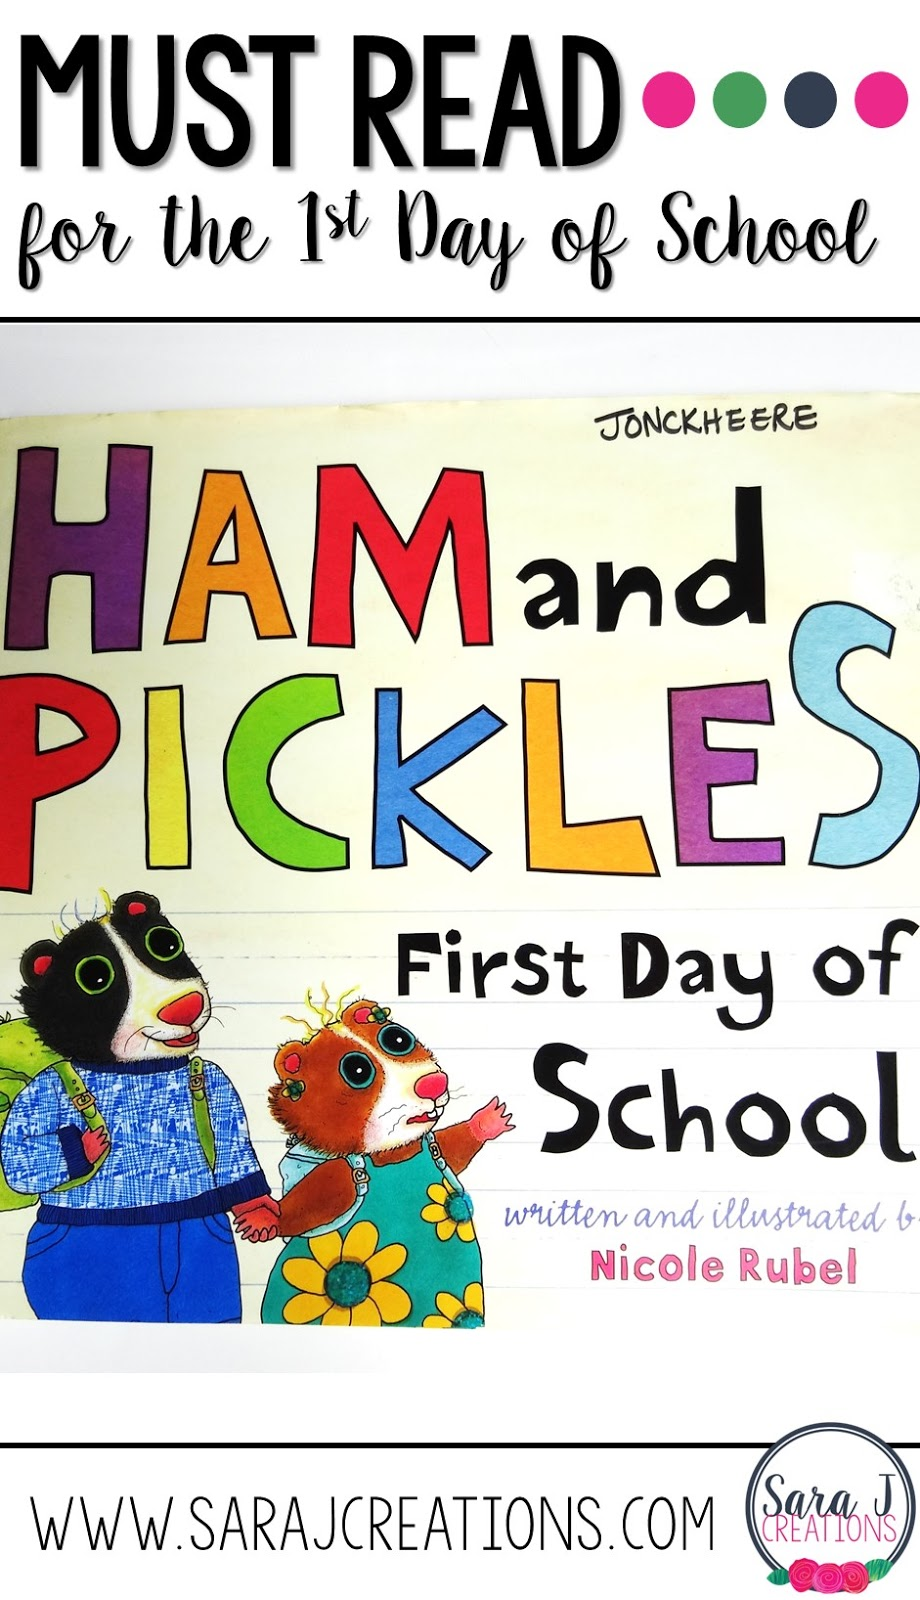 This is a funny book for back to school season and would be great on the first day of school.  The brother's silly advice for his sister's first day of school is funny to read to kids to ease their nerves.